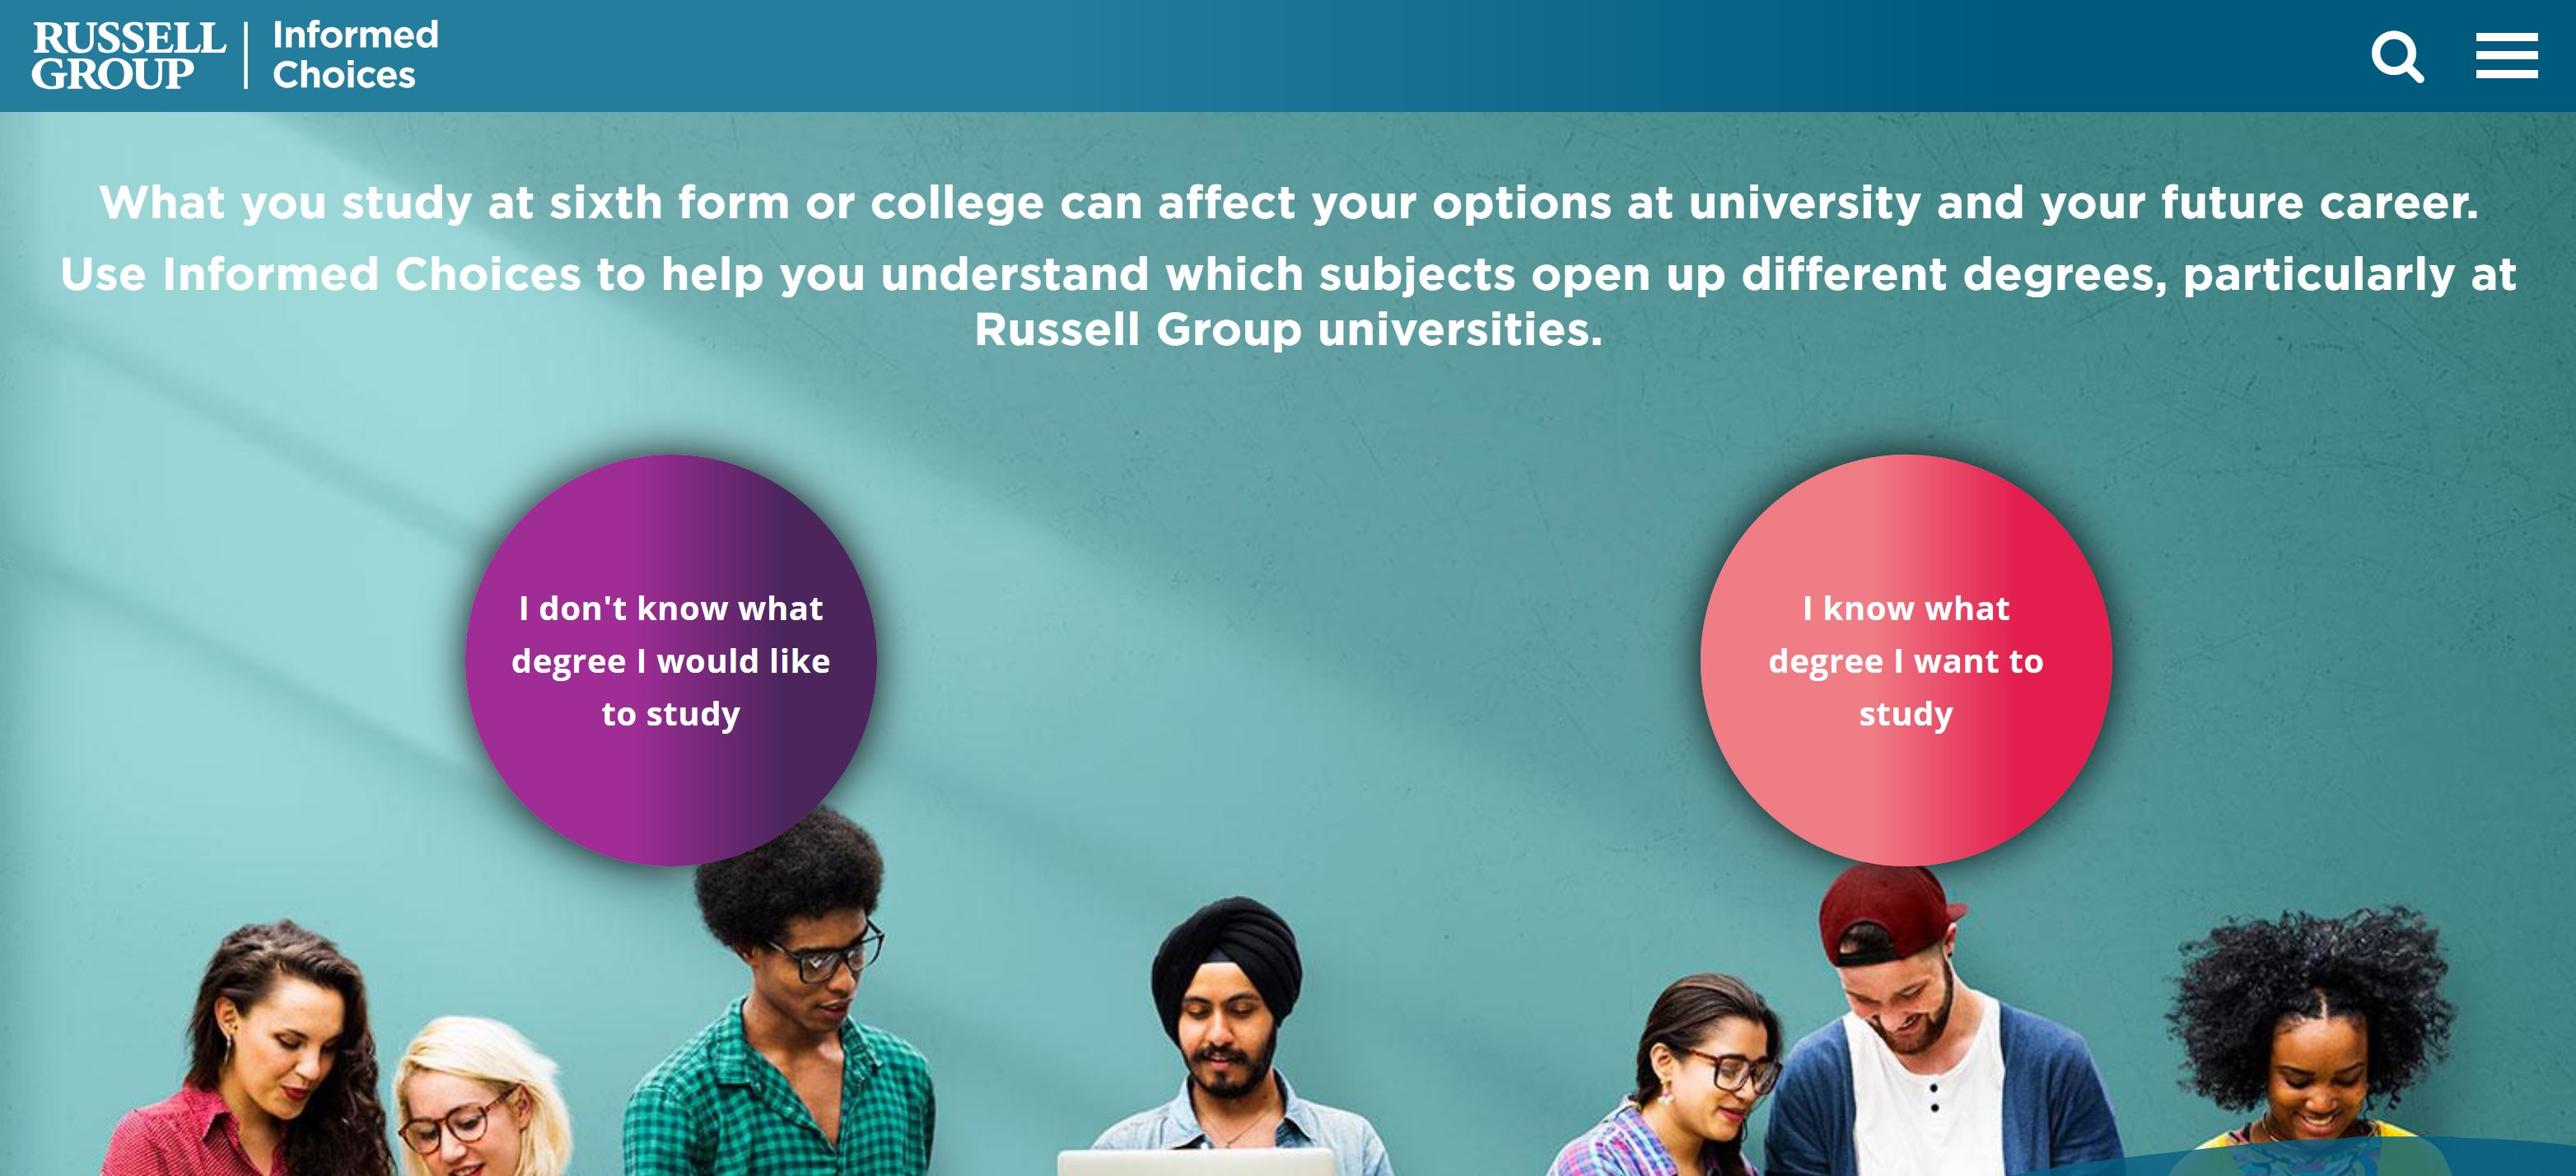 How Informed Choices can help support access to Russell Group universities